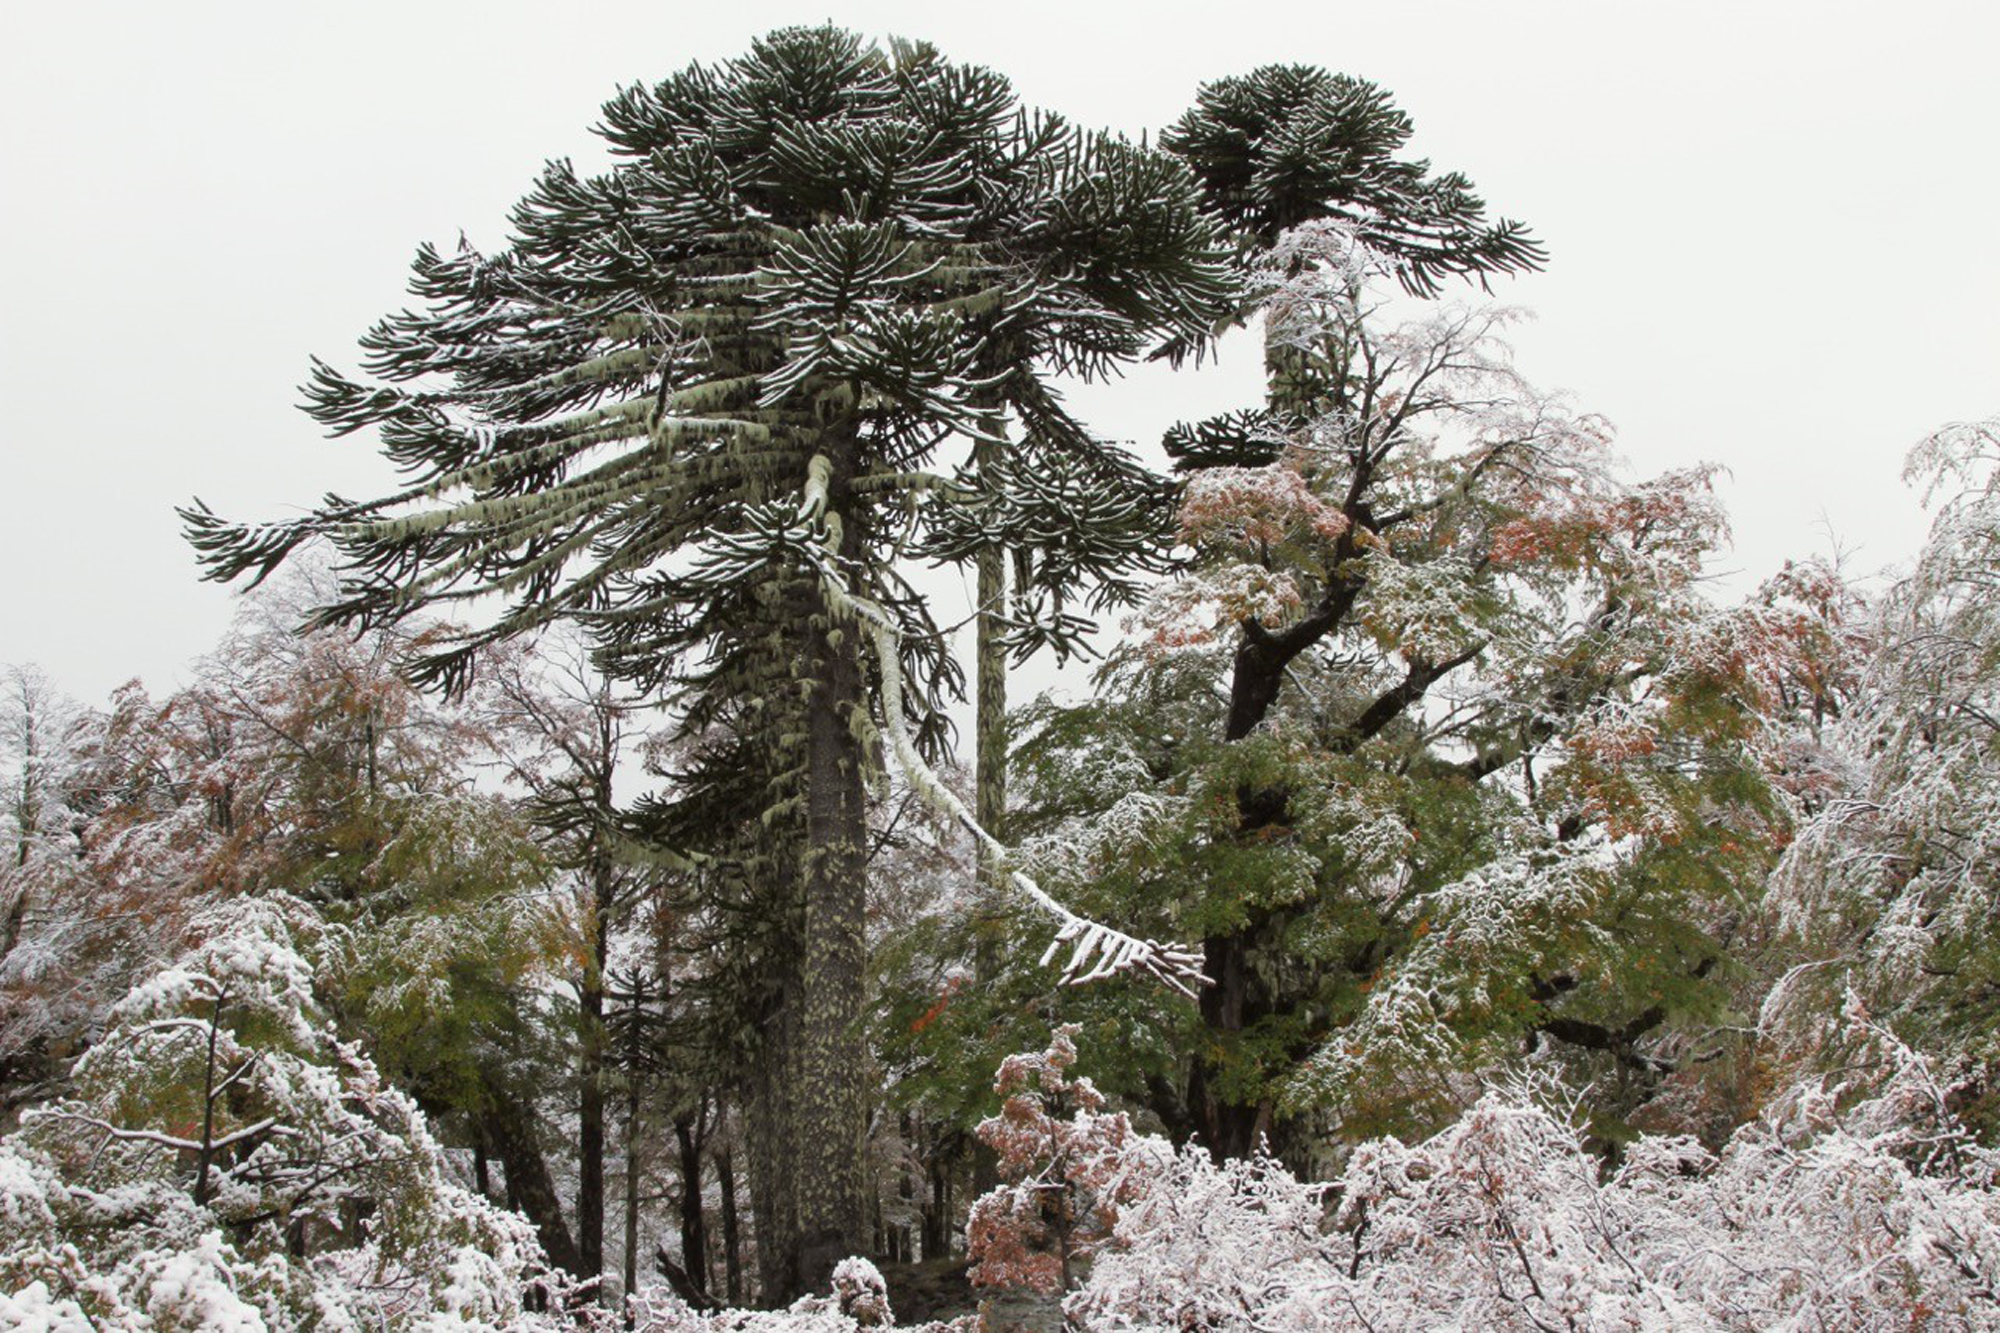 Fresh snow on araucaria trees (Araucaria araucana) in Autumn, Villarrica National Park, Chile.